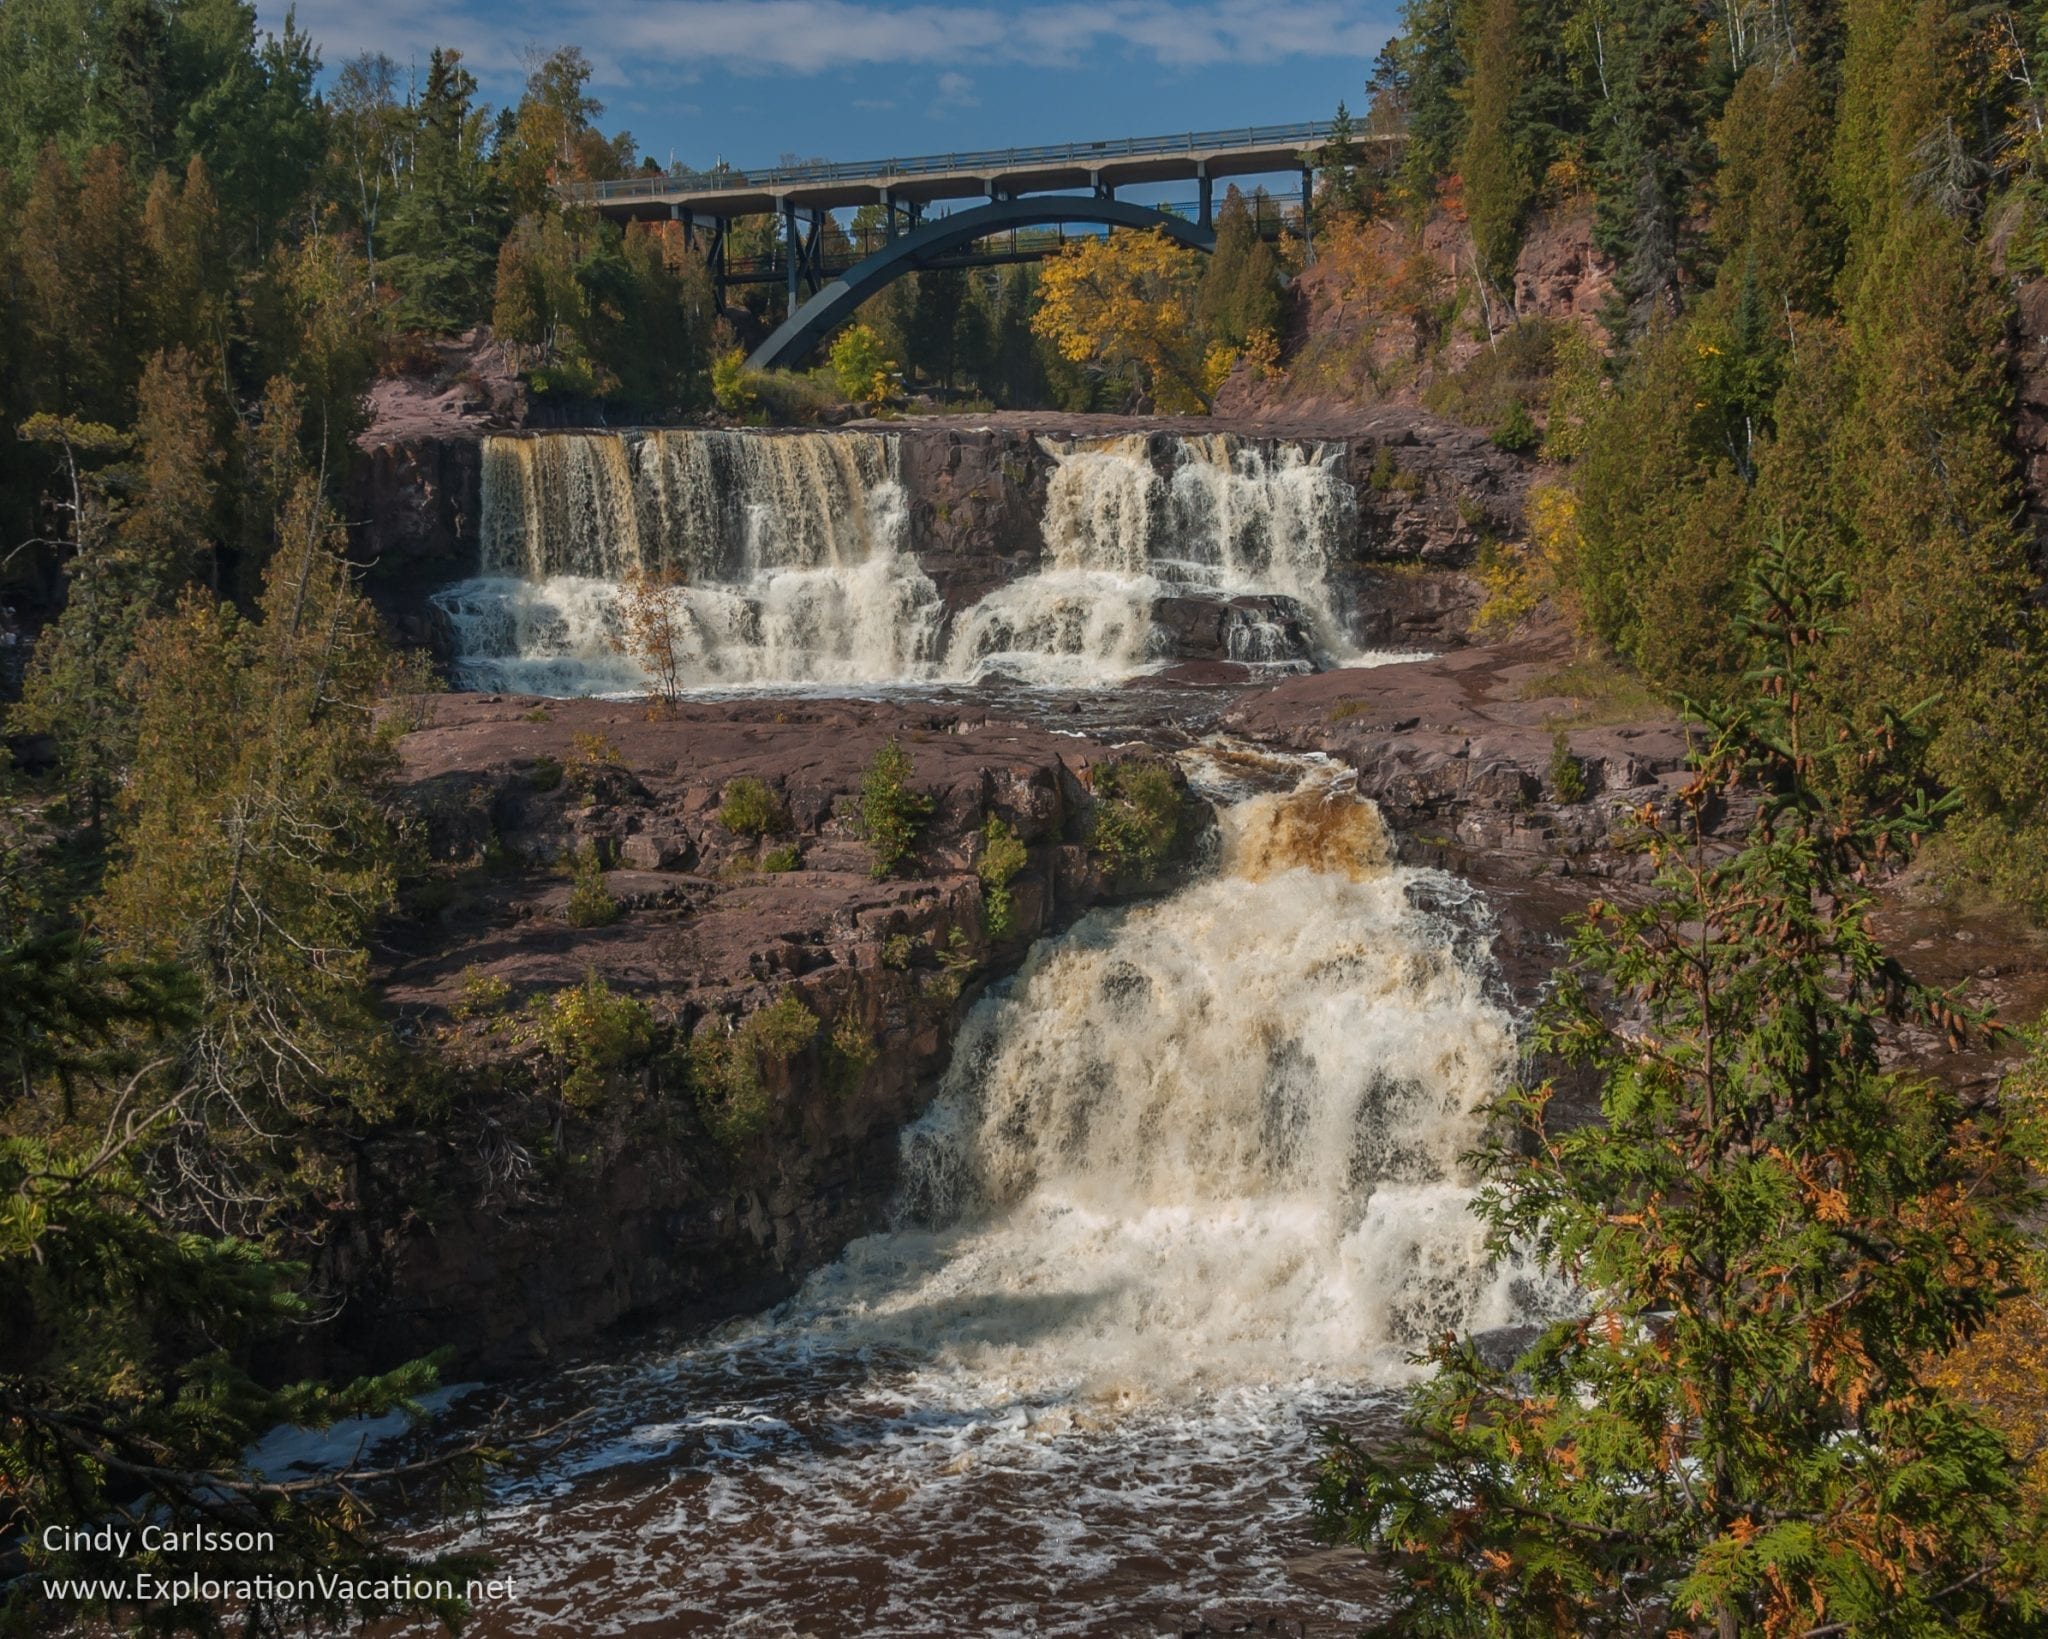 gooseberry falls bridal veil waterfall rushing water arch bridge evergreen forest